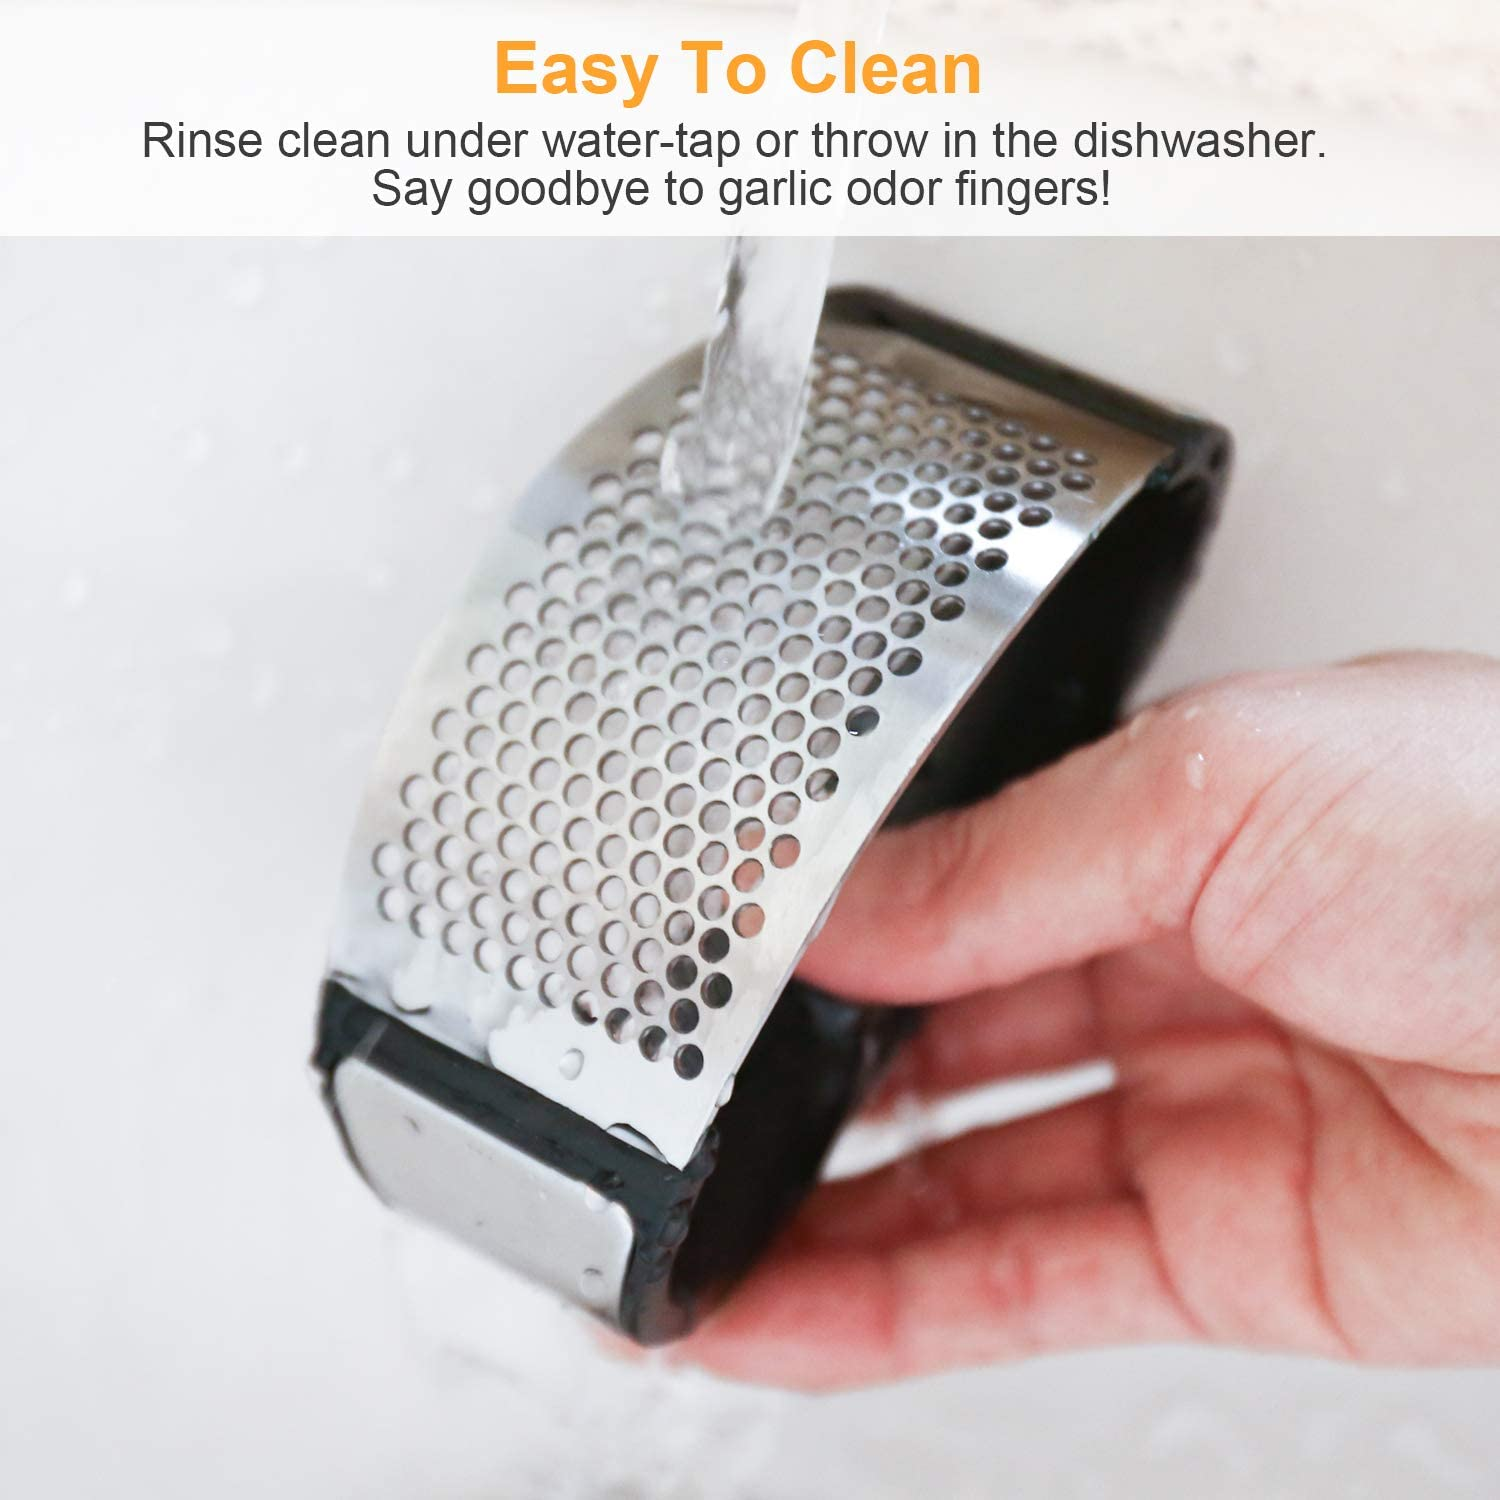 Metal Garlic Press with White coated paint Easy to clean.